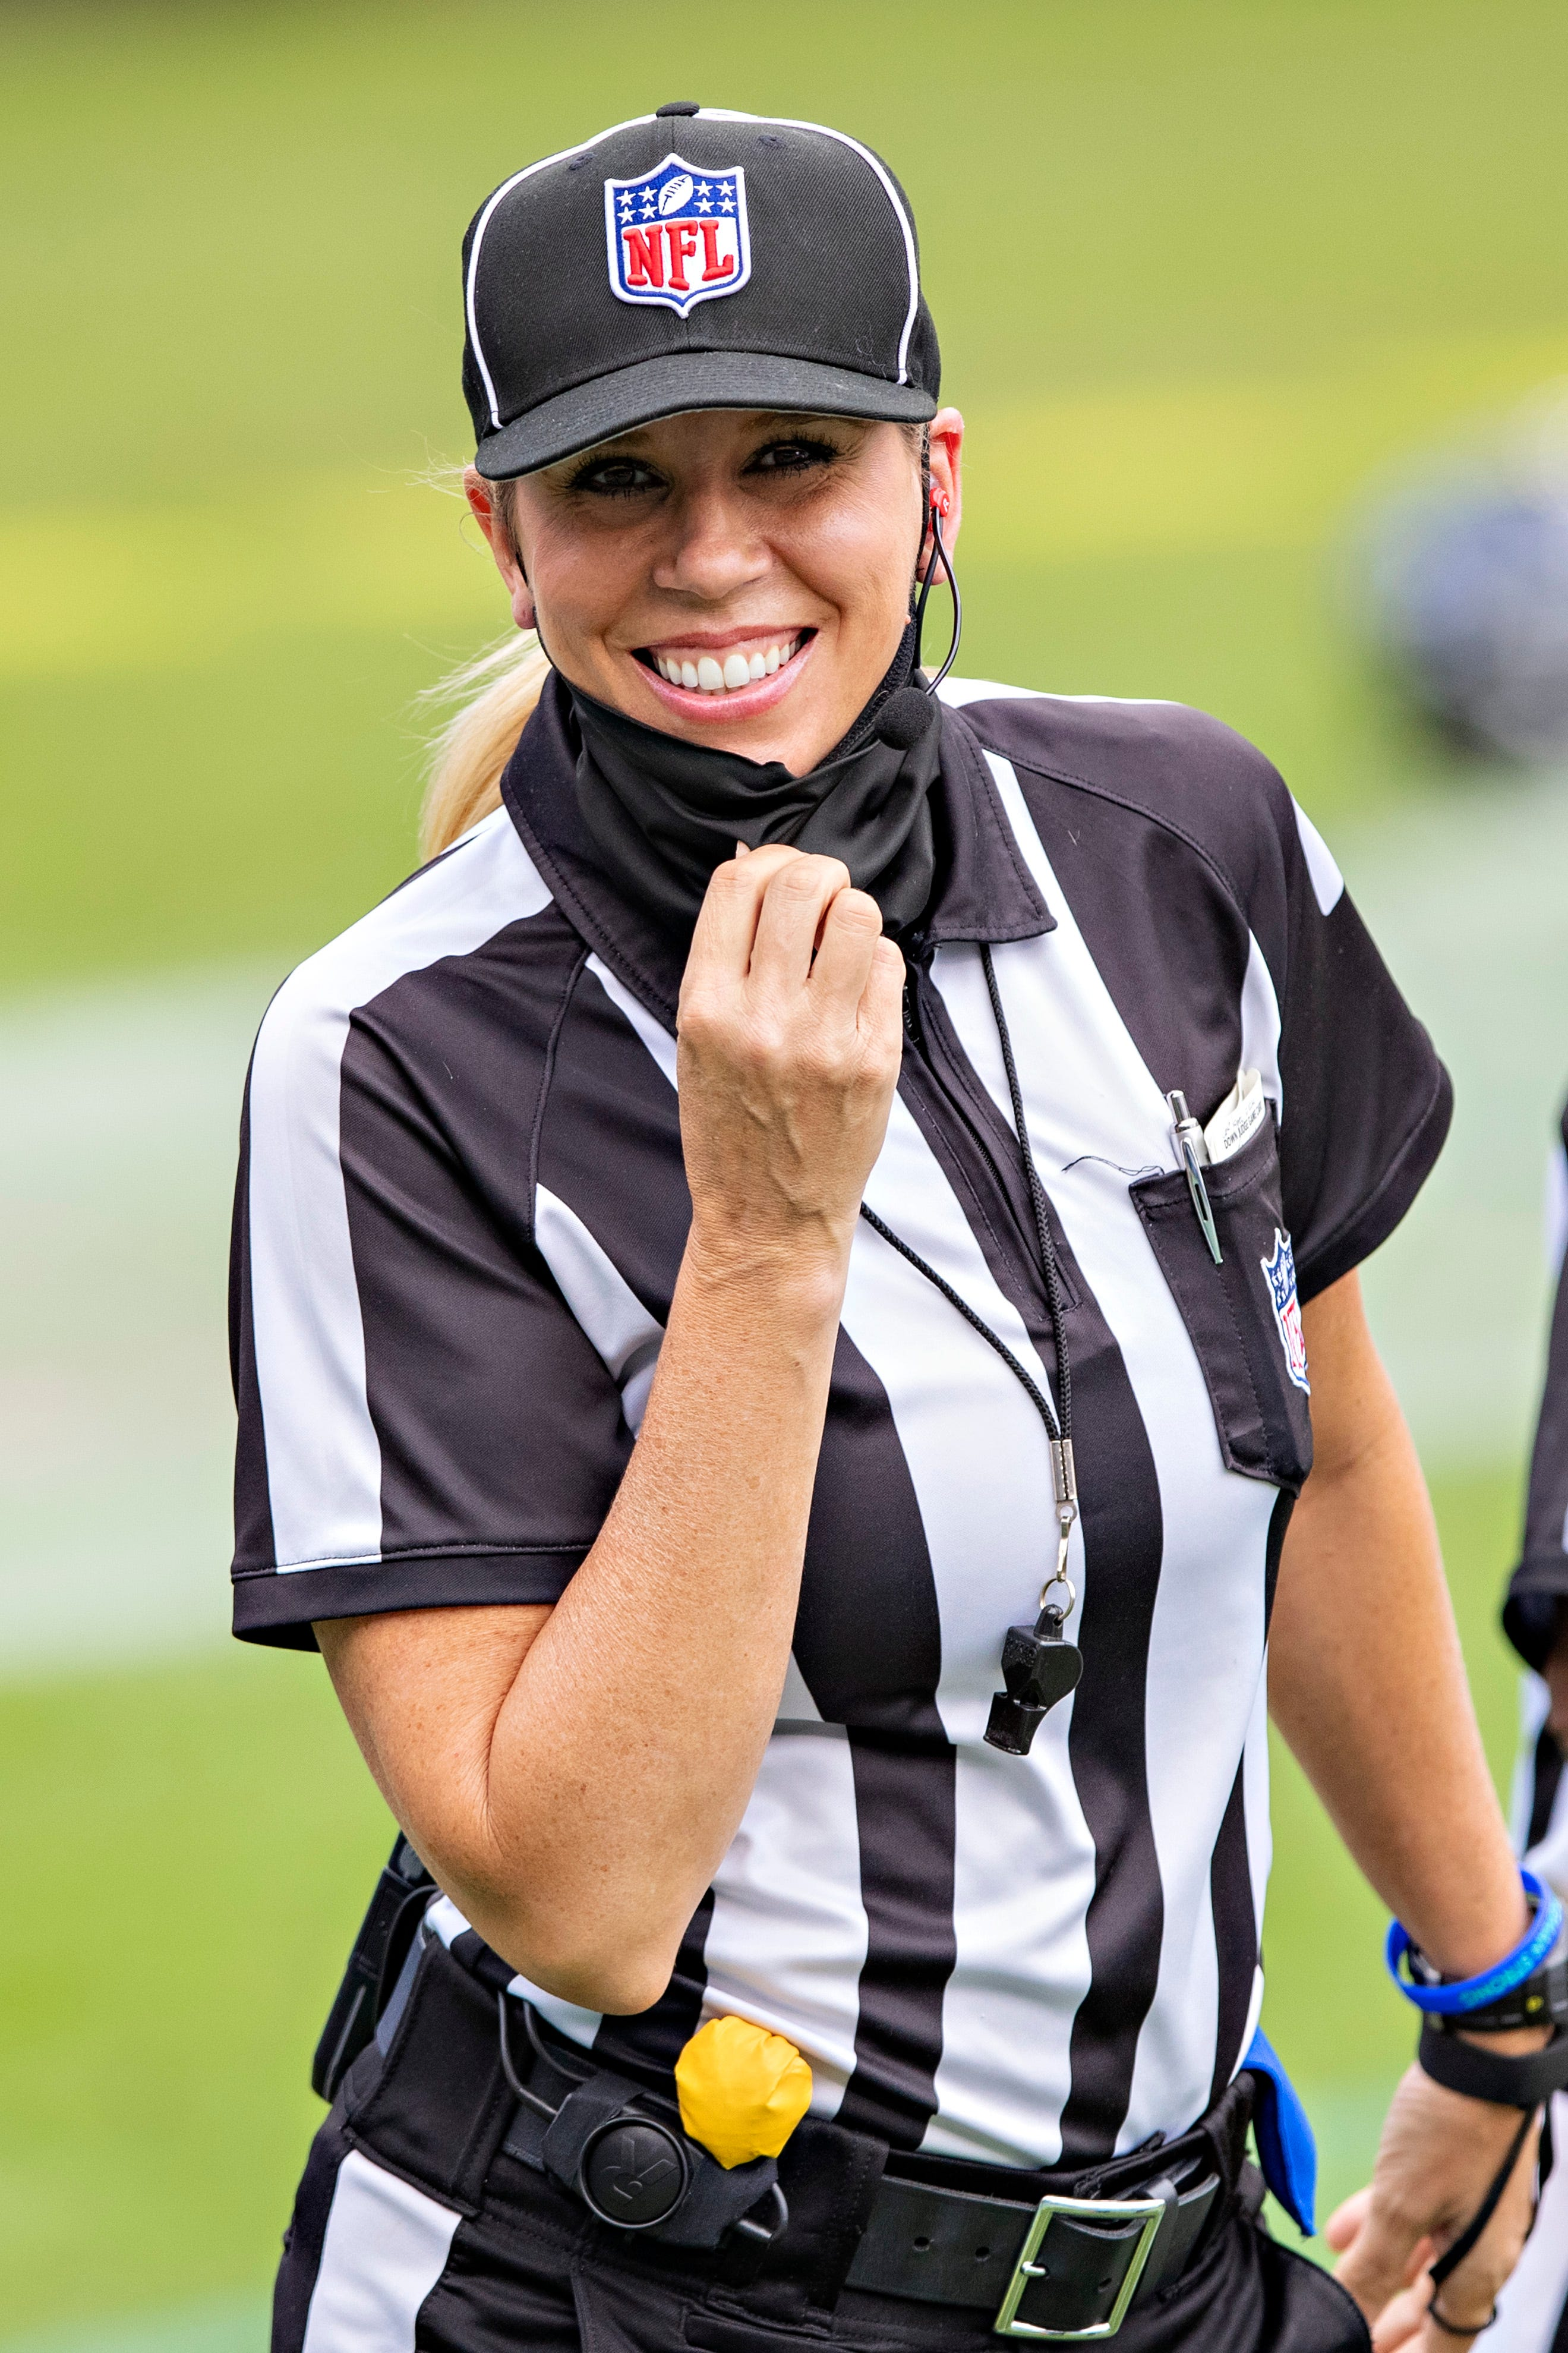 NFL referee Sarah Thomas gets history-making Super Bowl assignment